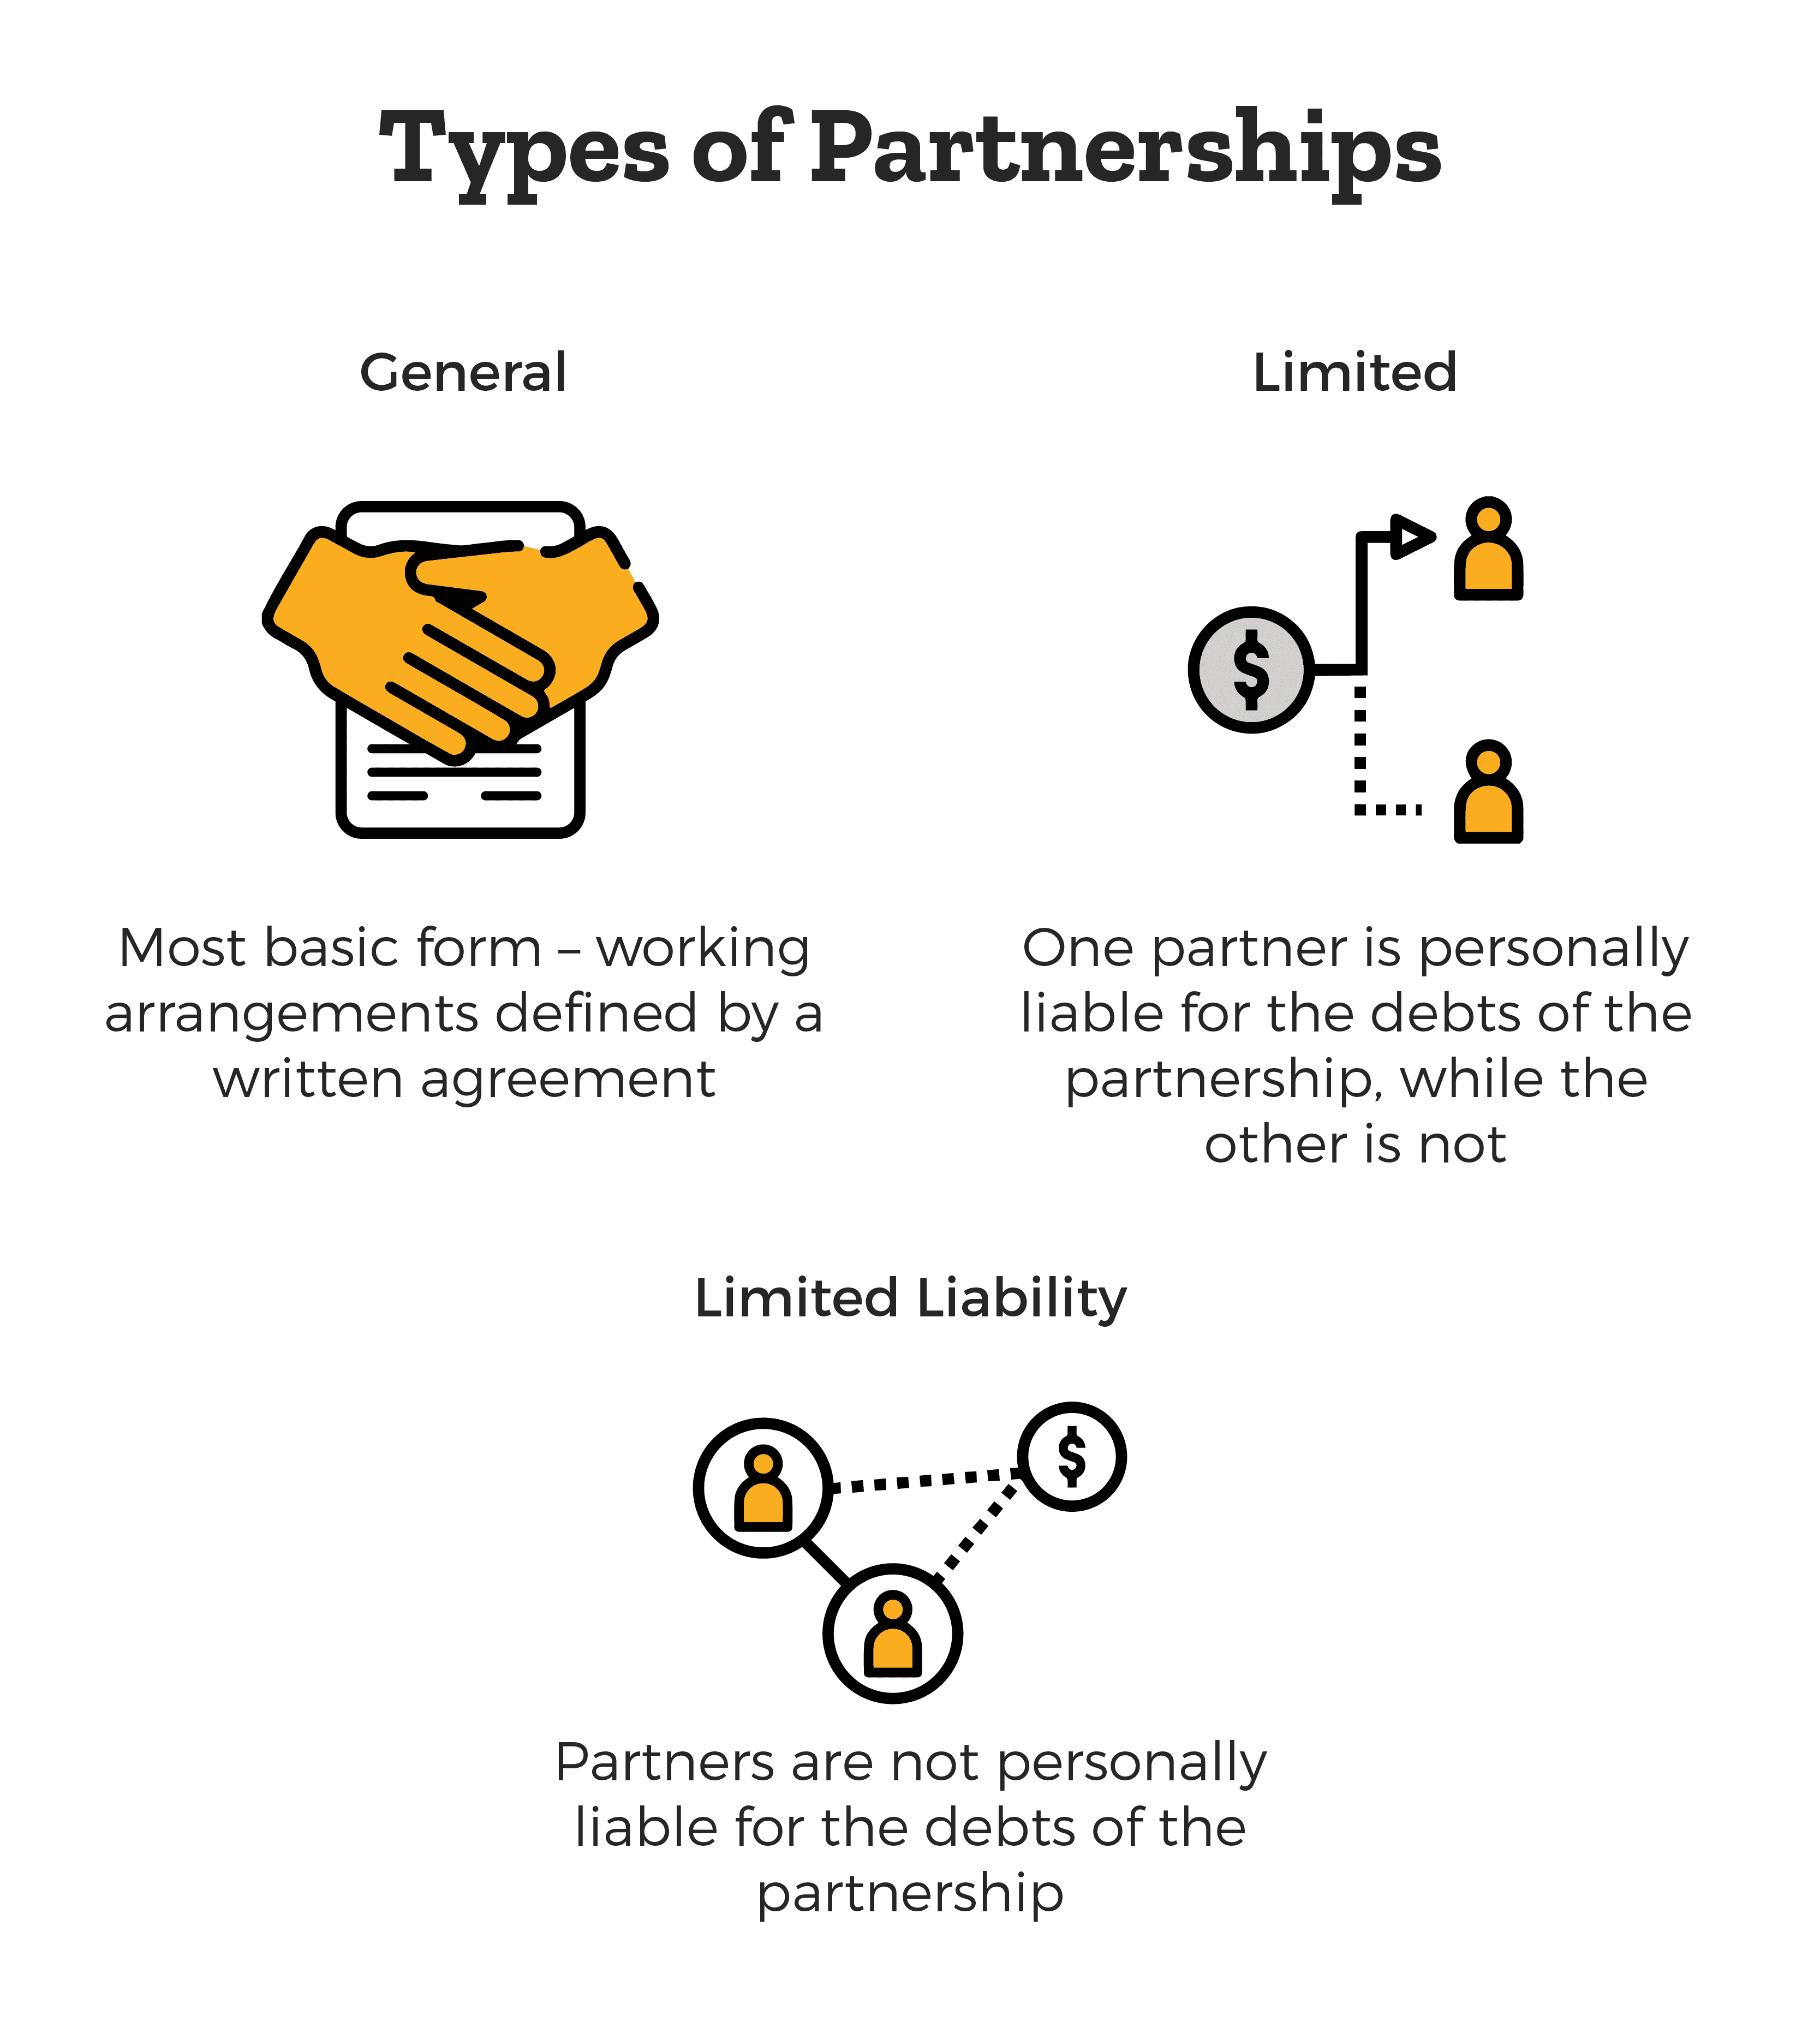 Types of Business Partnerships - general, limited, limited liability